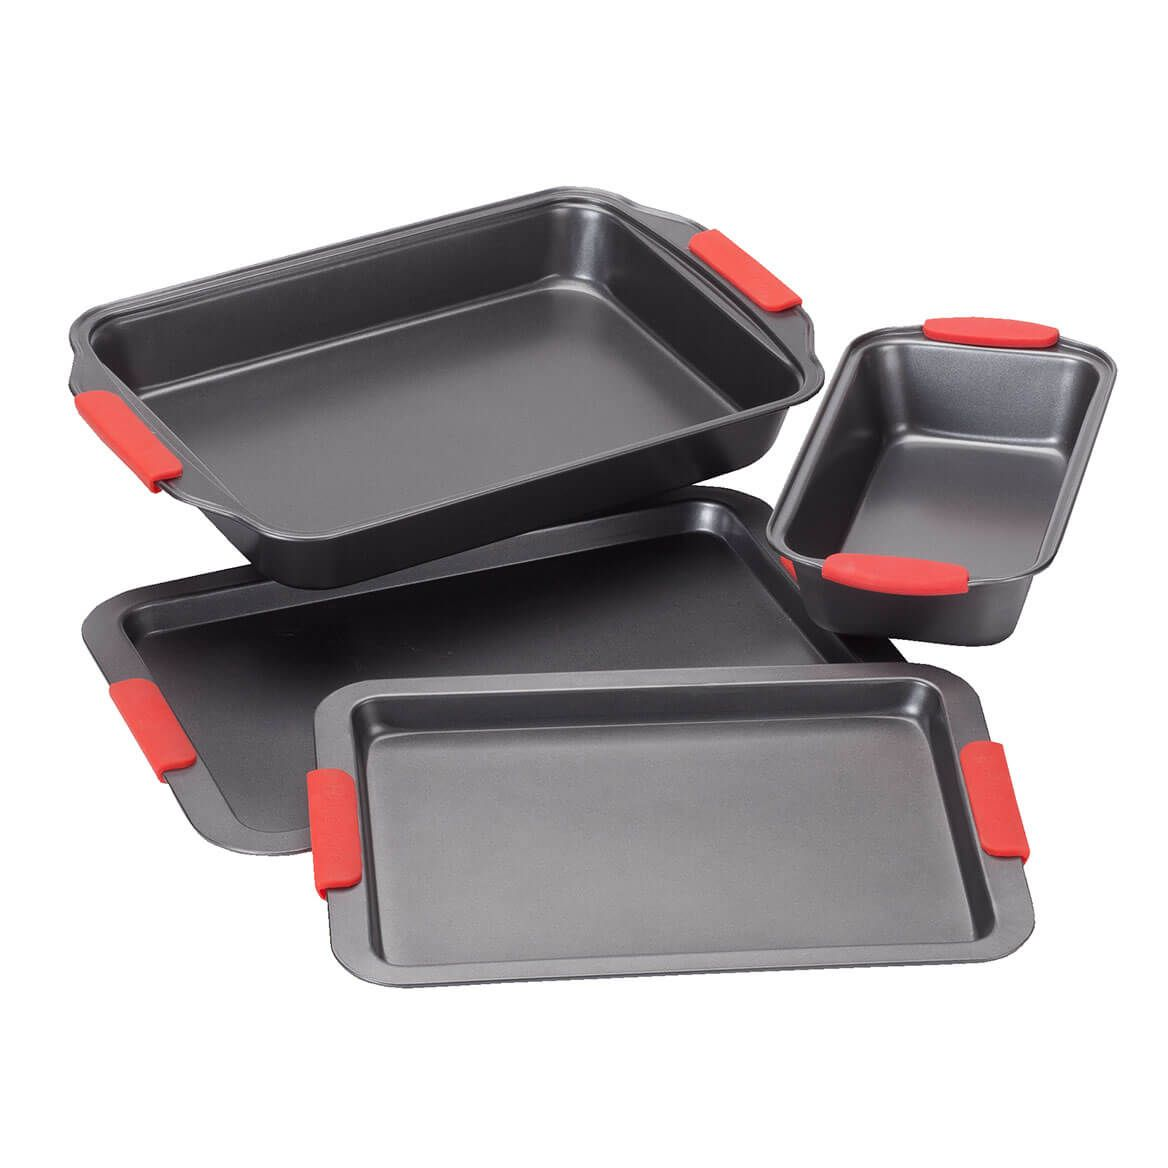 Cook's Essentials 4-Pc. Baking Set with Red Silicone Handles by Home-Style Kitchen™-356760